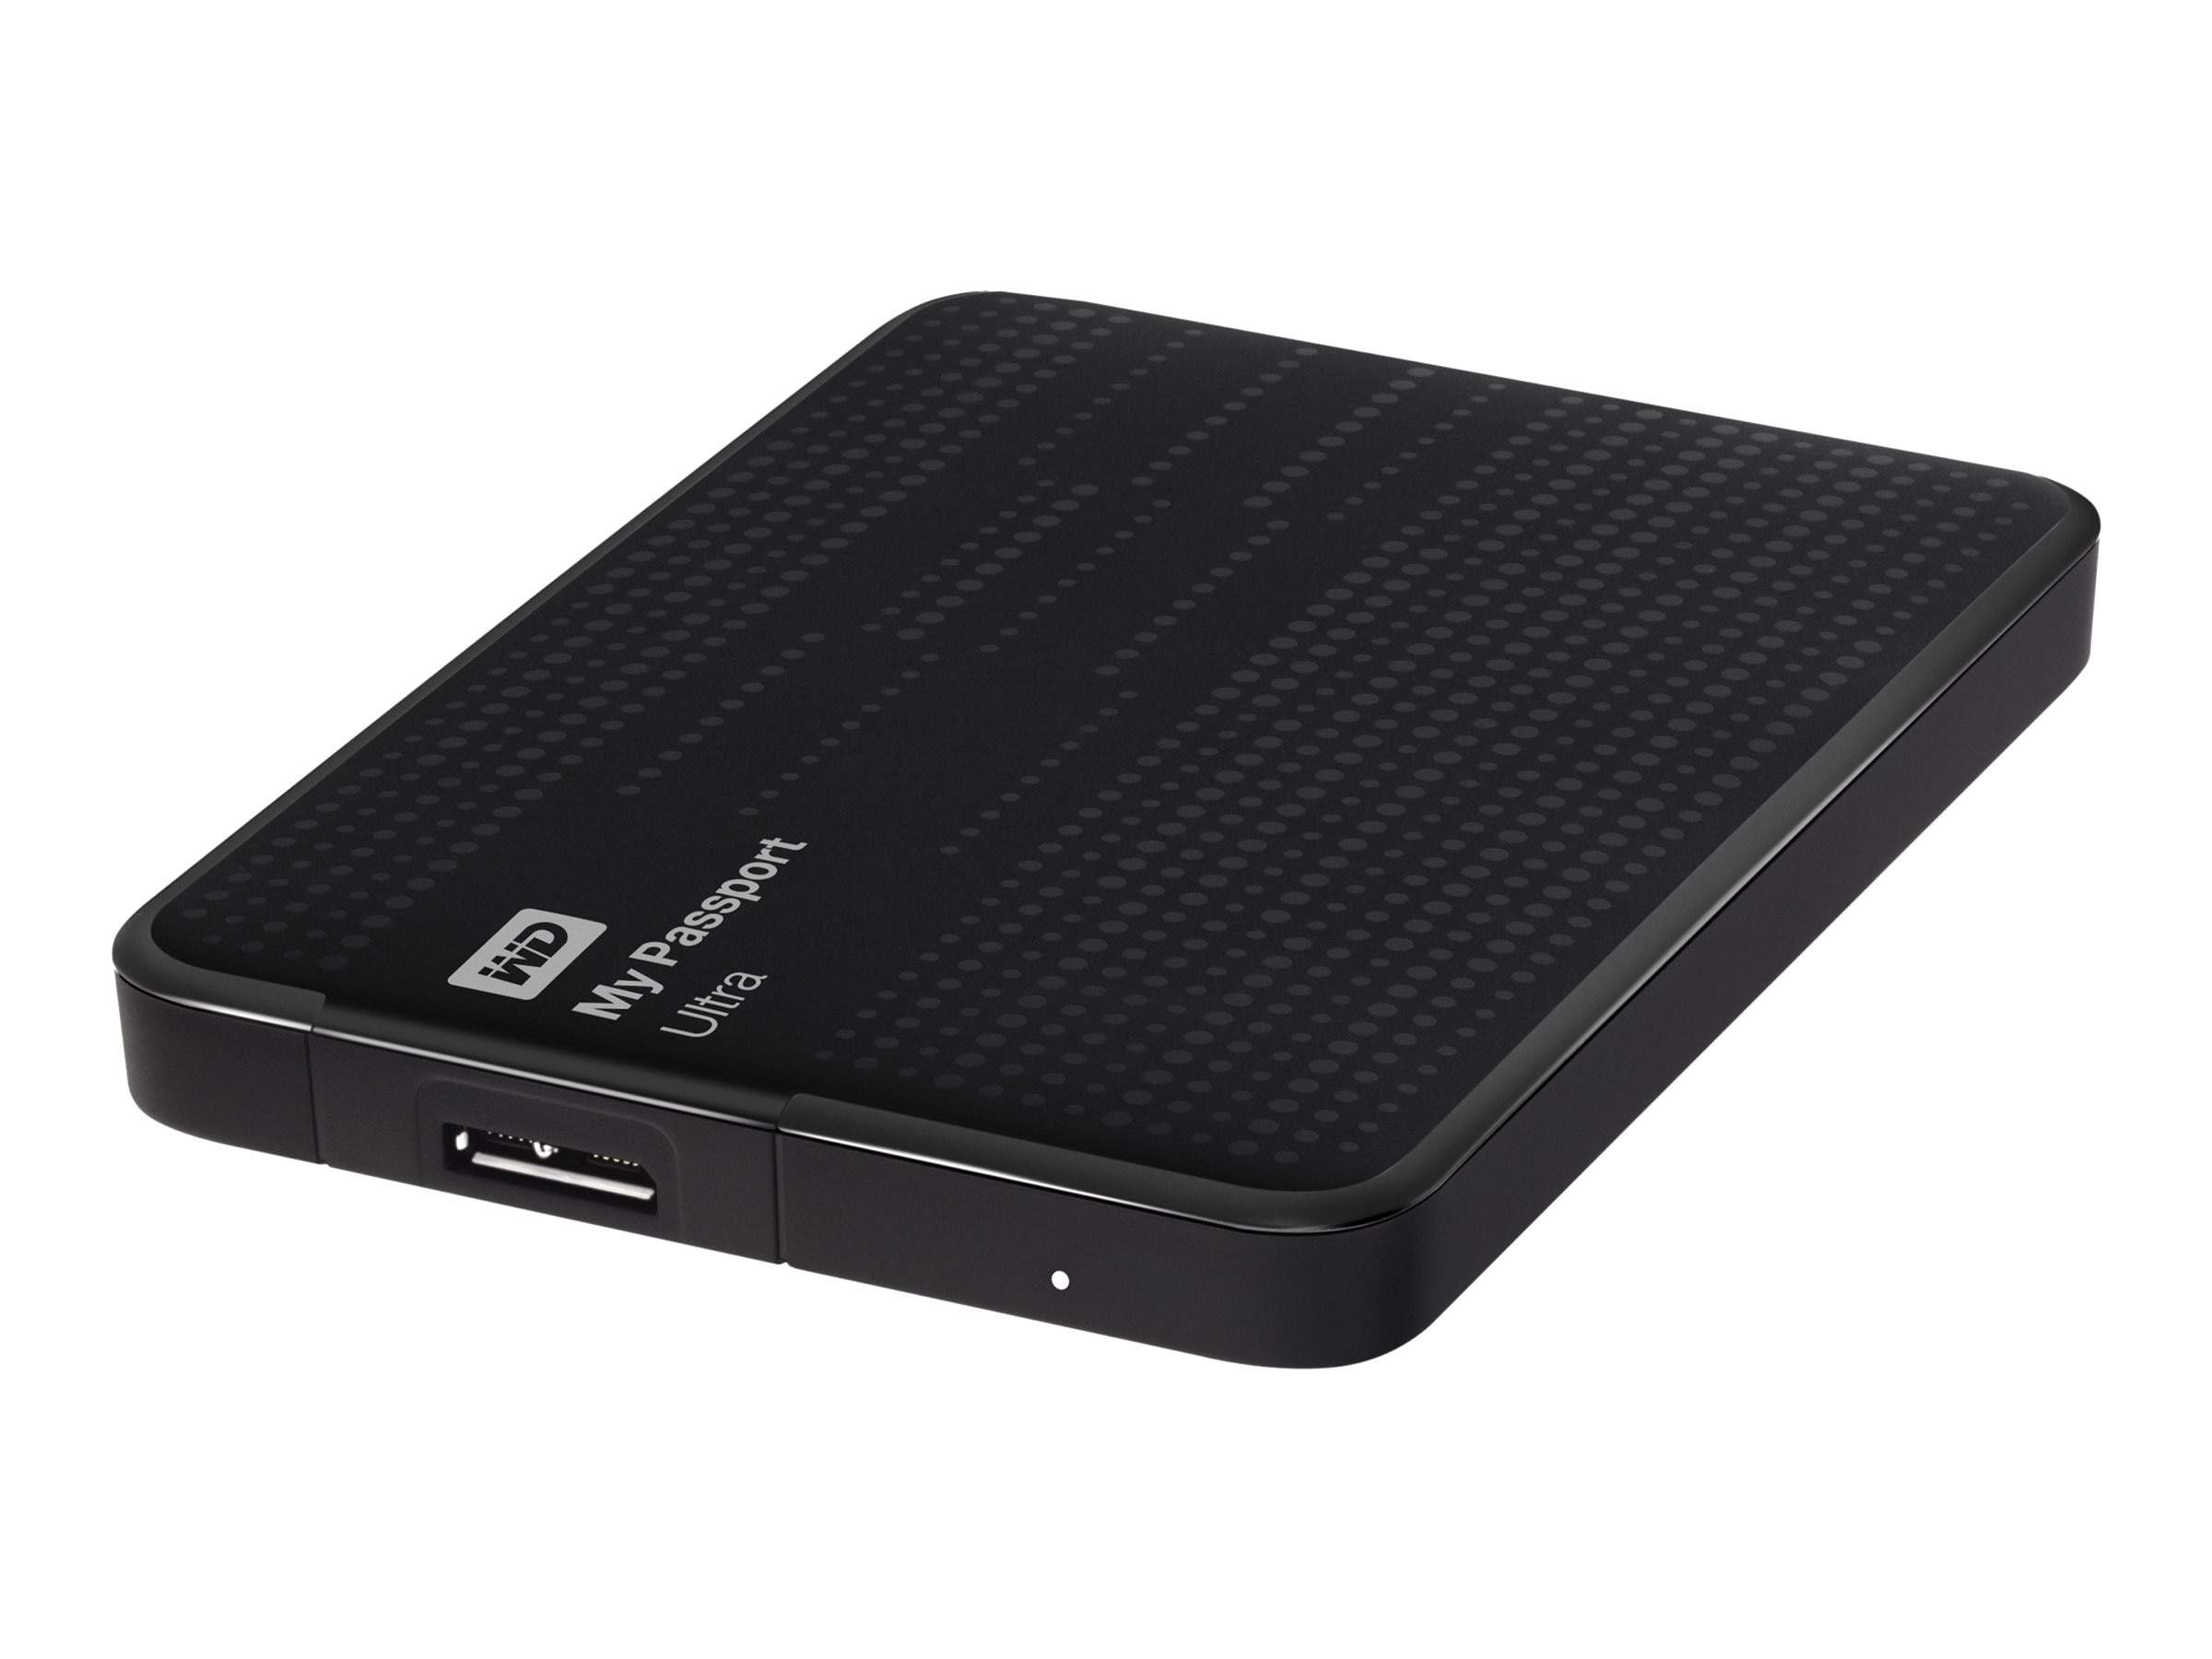 WD 1TB My Passport Ultra USB 3.0 Portable Hard Drive - Black, WDBZFP0010BBK-NESN